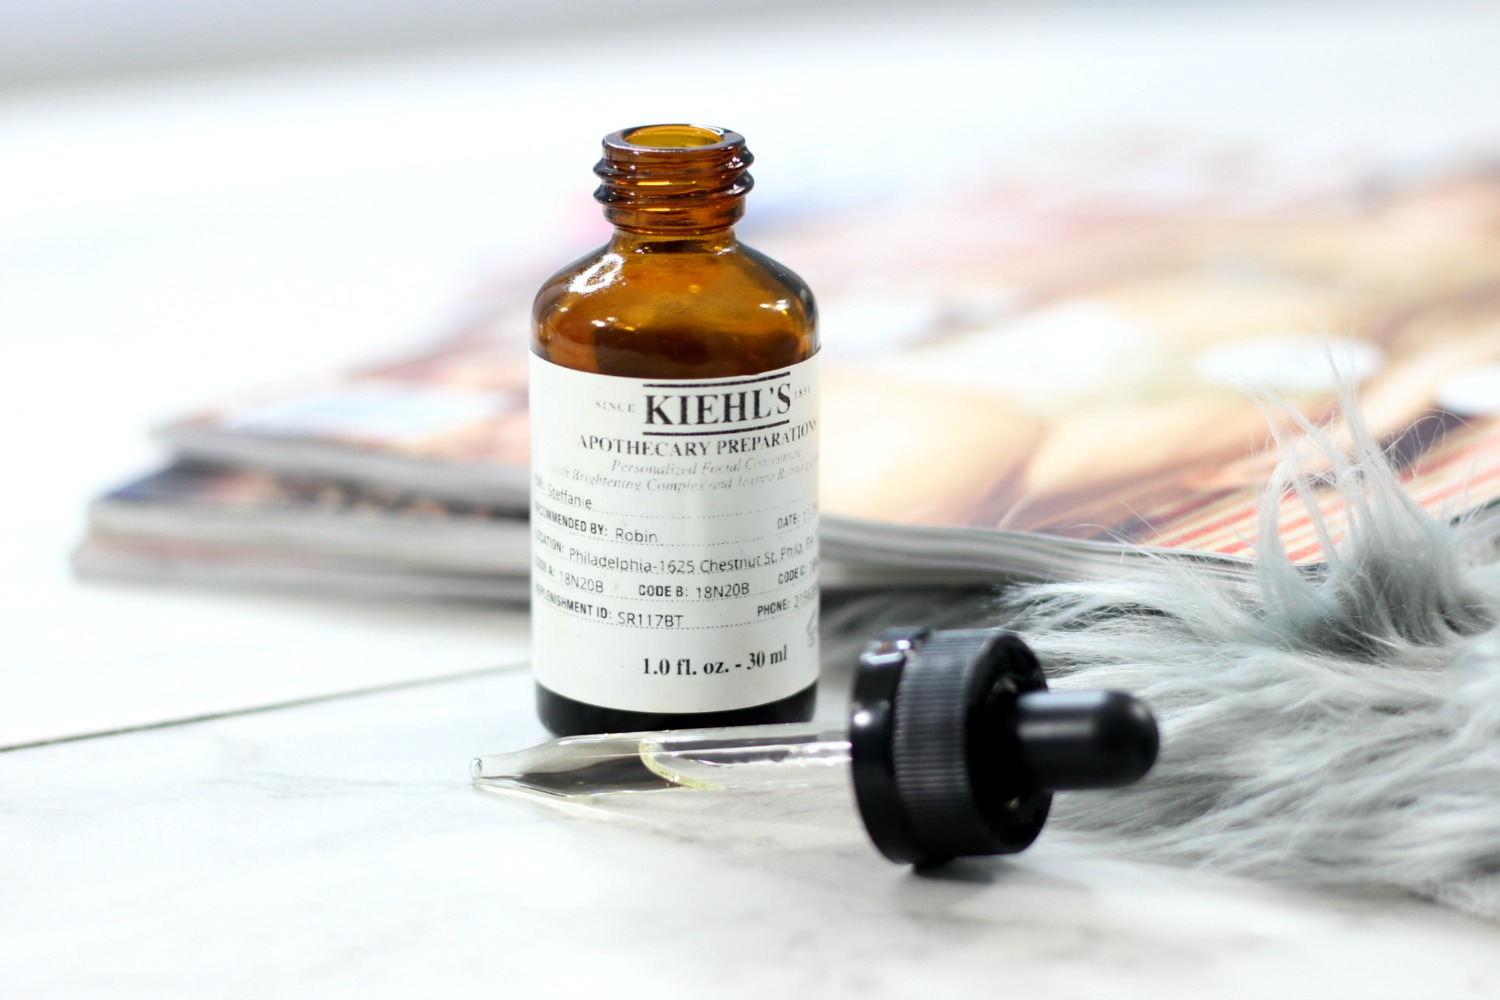 Kiehl's Apothecary Preparations Review - Texture and Clarity Serum